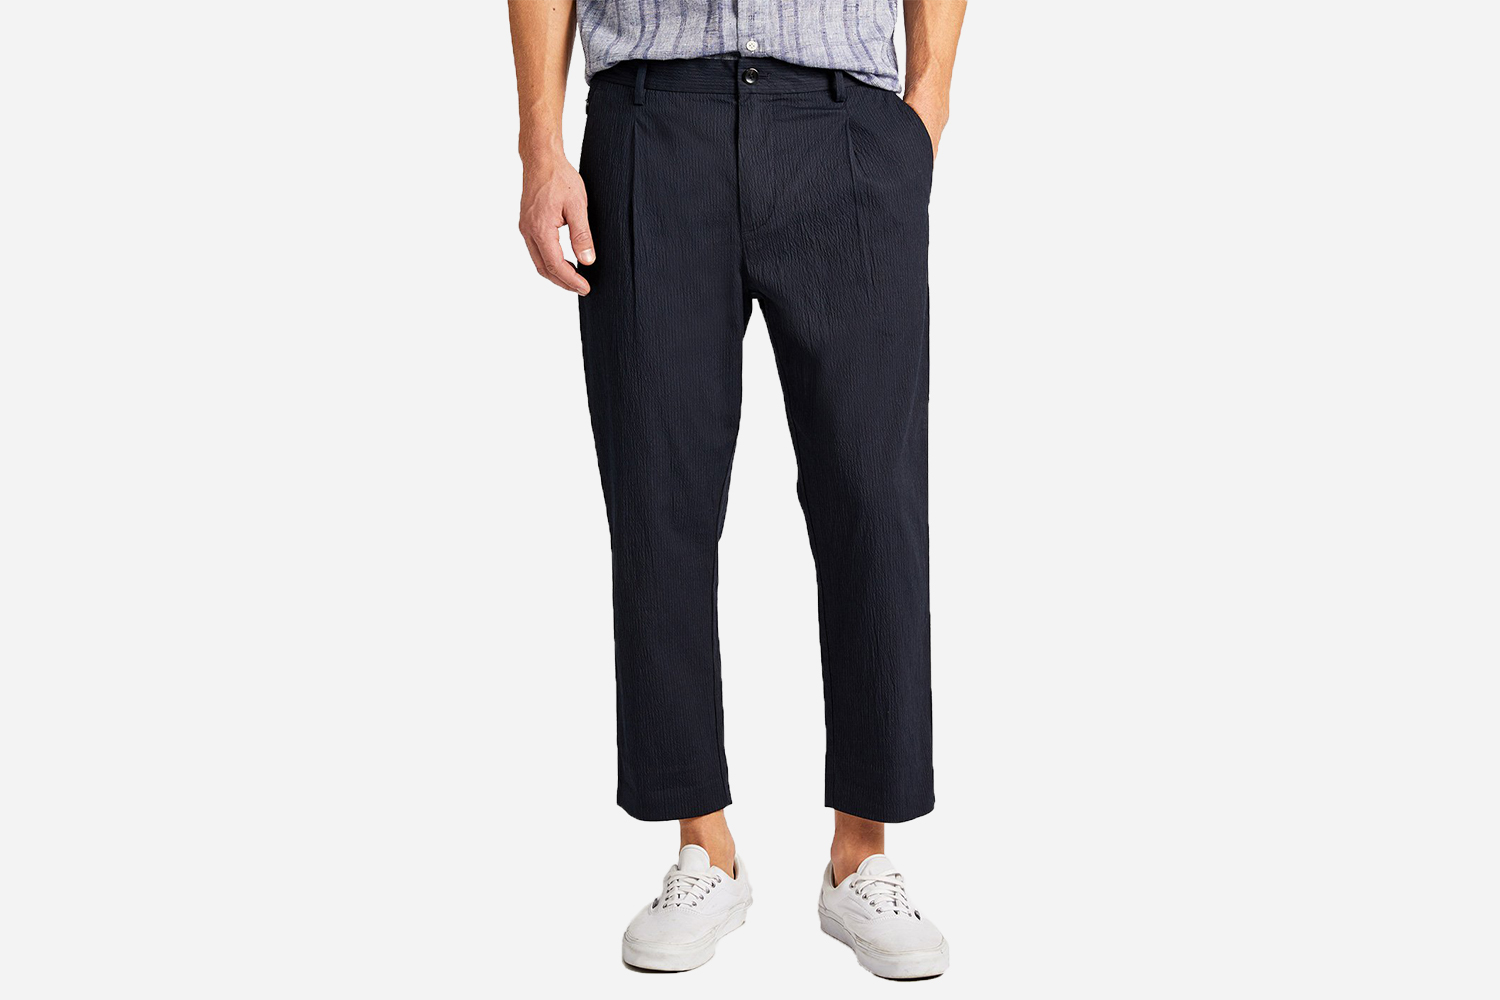 O.N.S Clothing Conduit Packable Pant